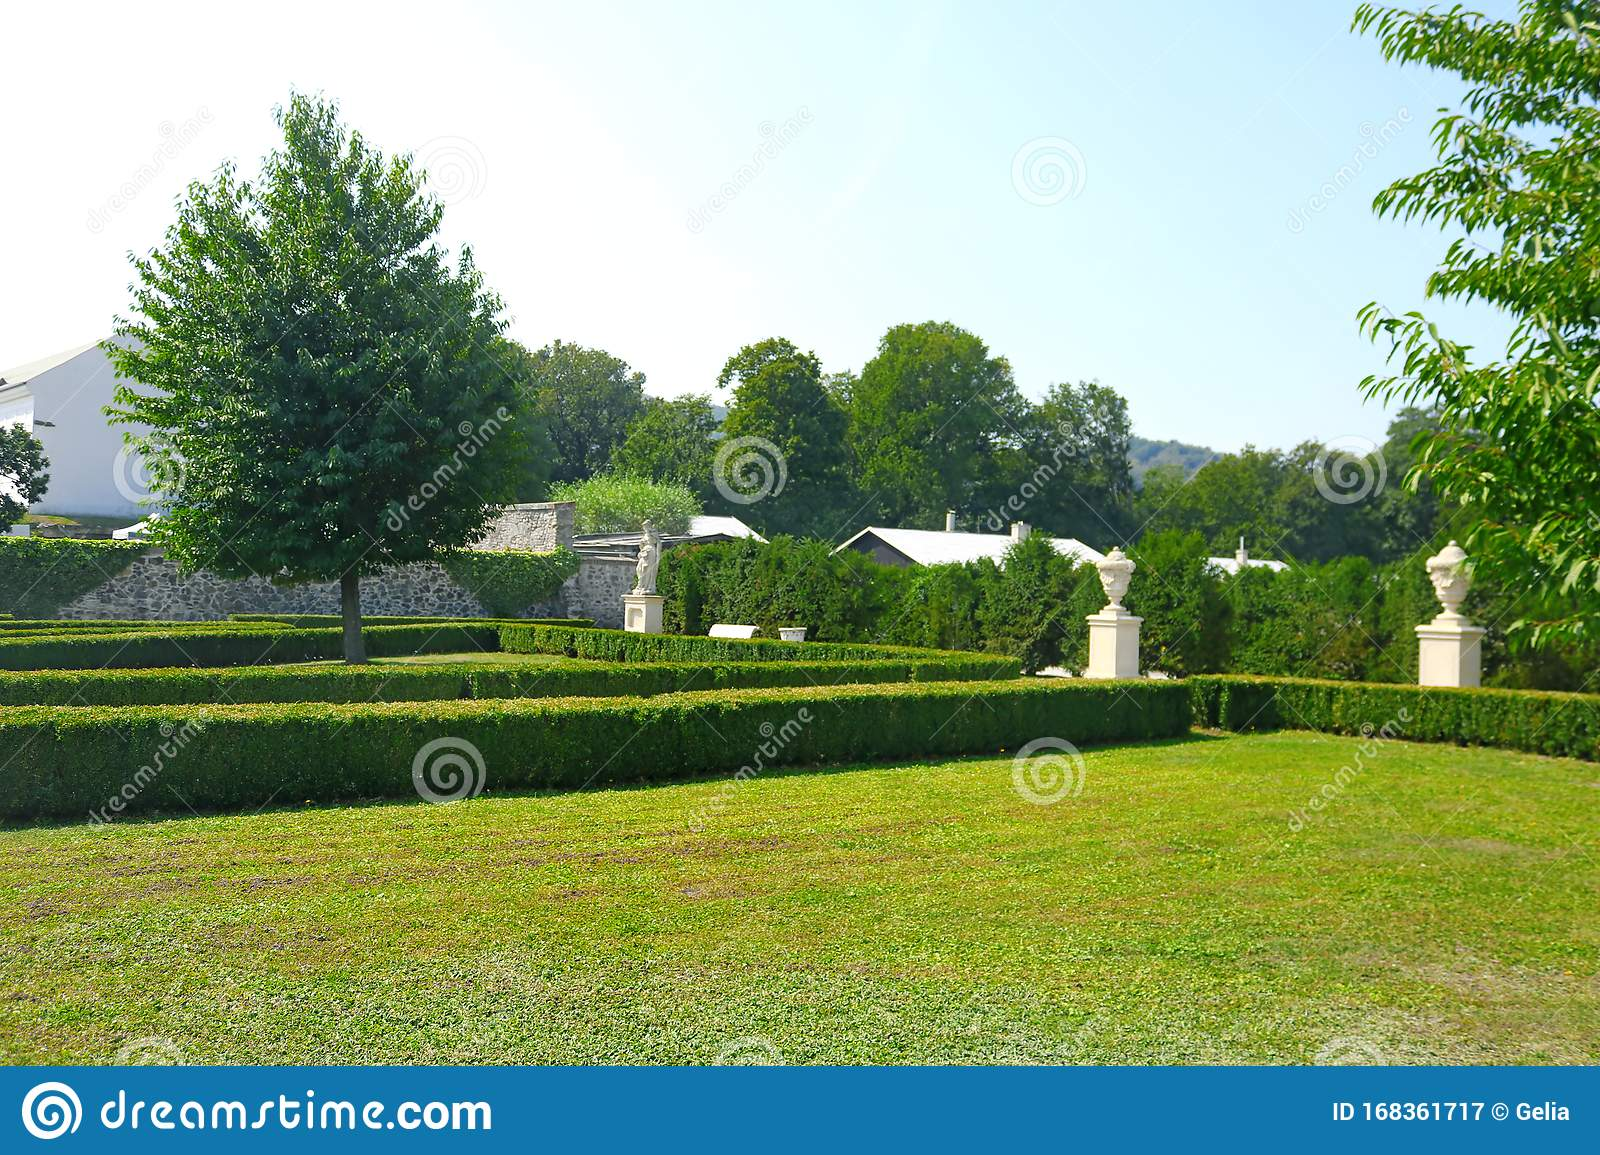 Garden And Courtyard In The Summer On The Site Of Red Stone Castle In Slovakia Stock Image Image Of Famous Courtyard 168361717